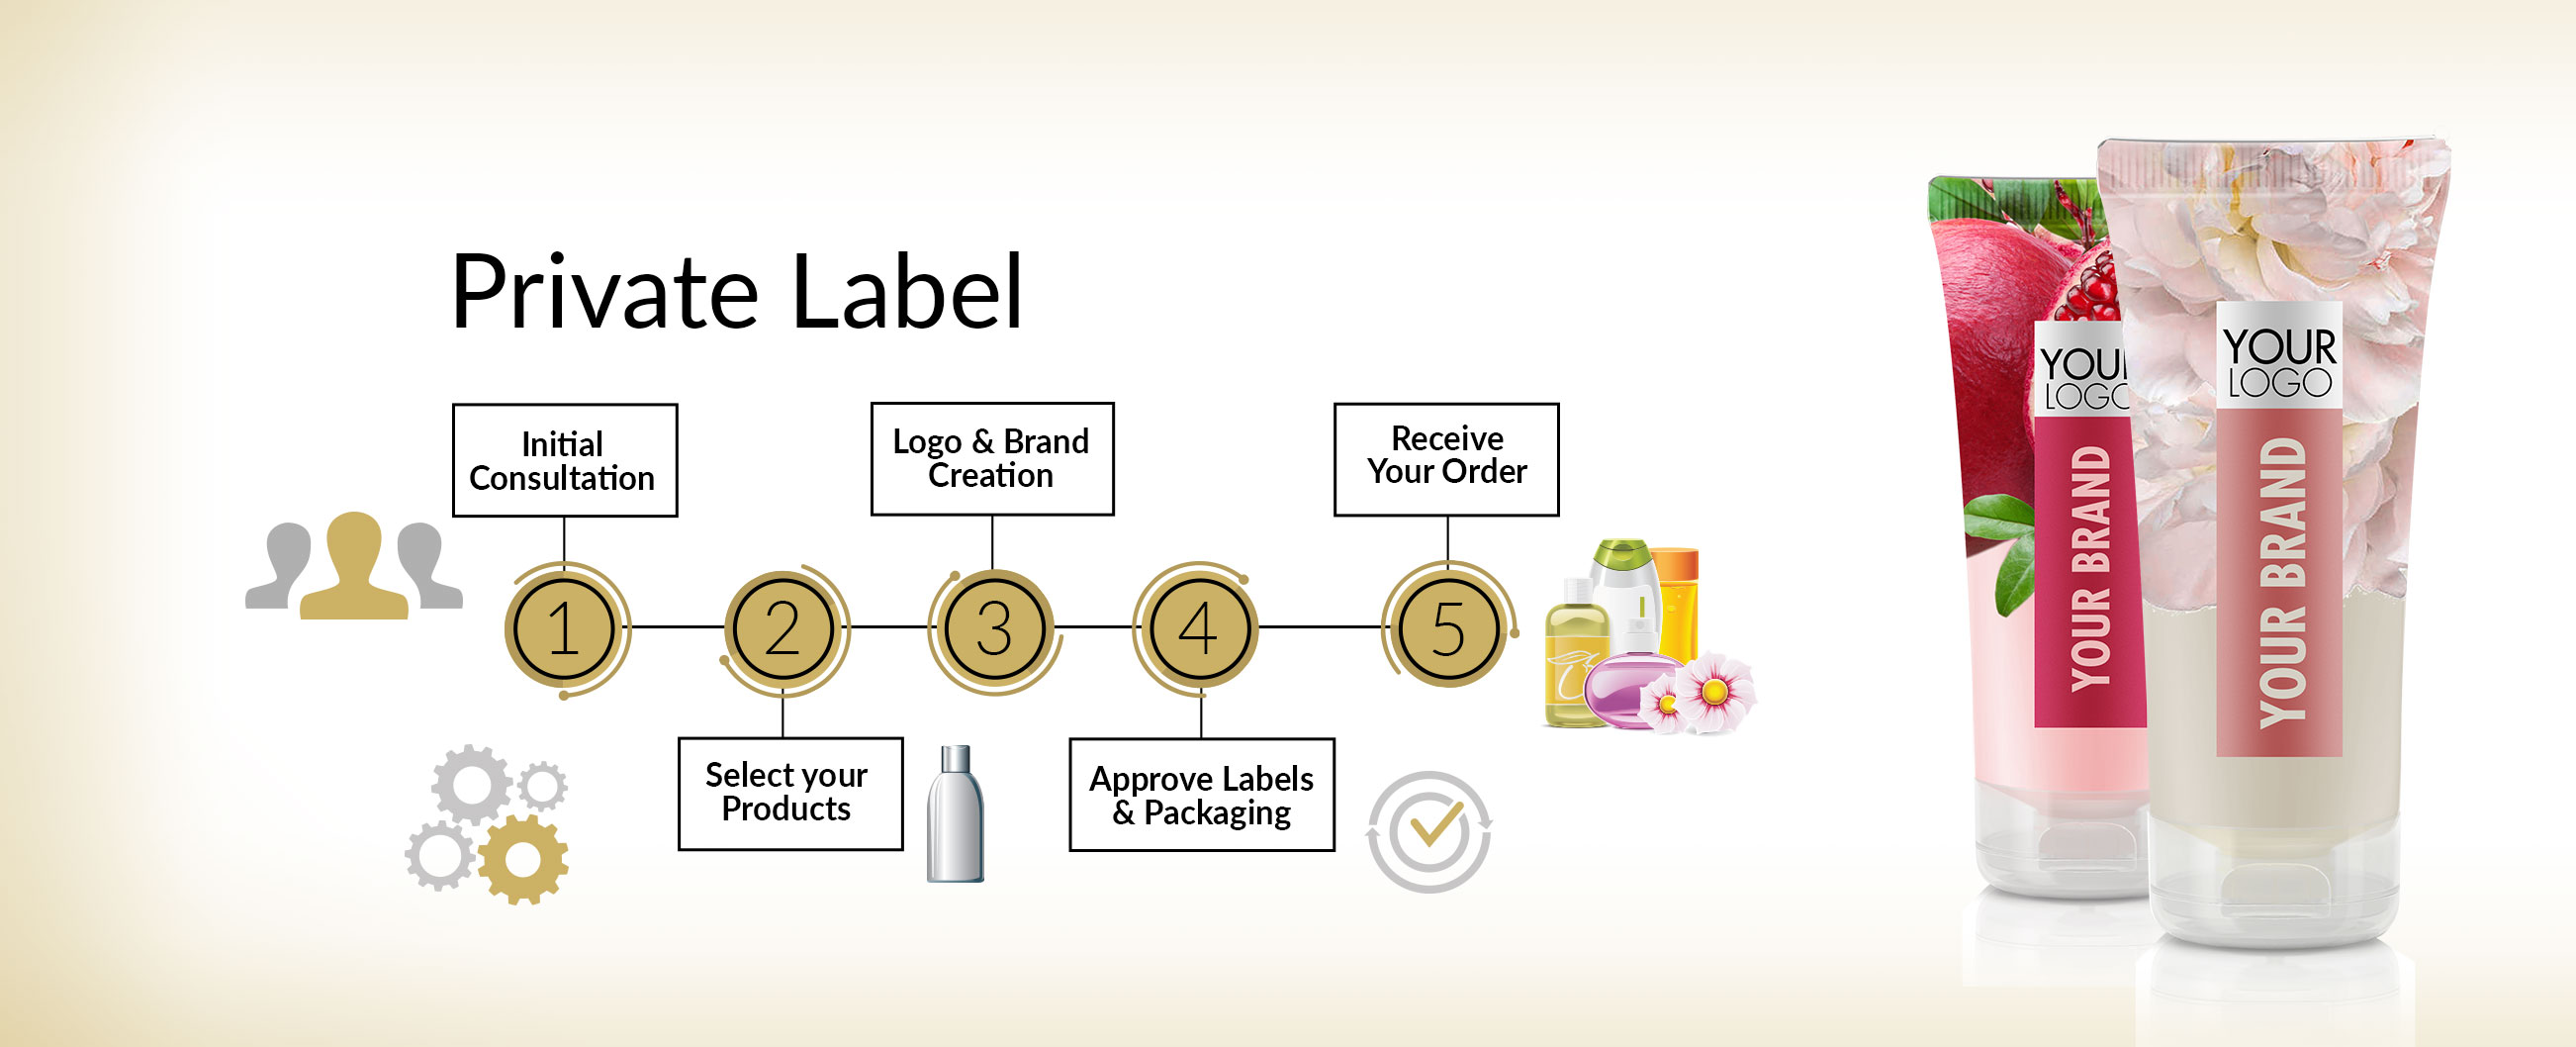 About Private Label | Delon Laboratories